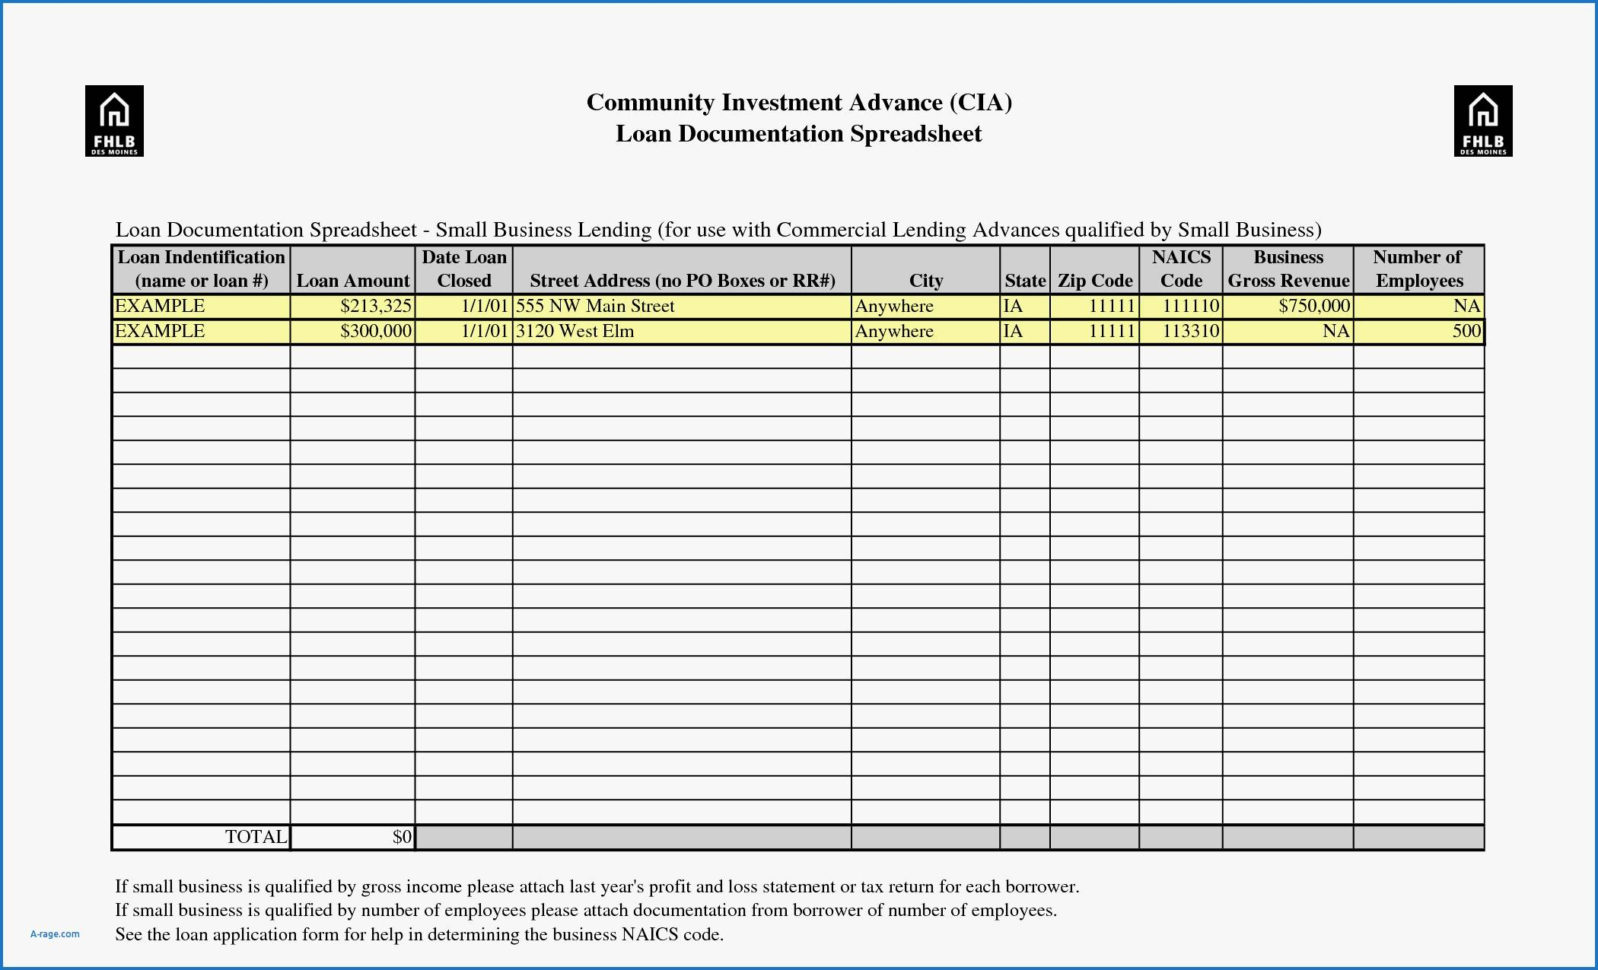 Business Expense Spreadsheet For Taxes Regarding Example Of Spreadsheet For Taxes Businessense Inspirationalenses And